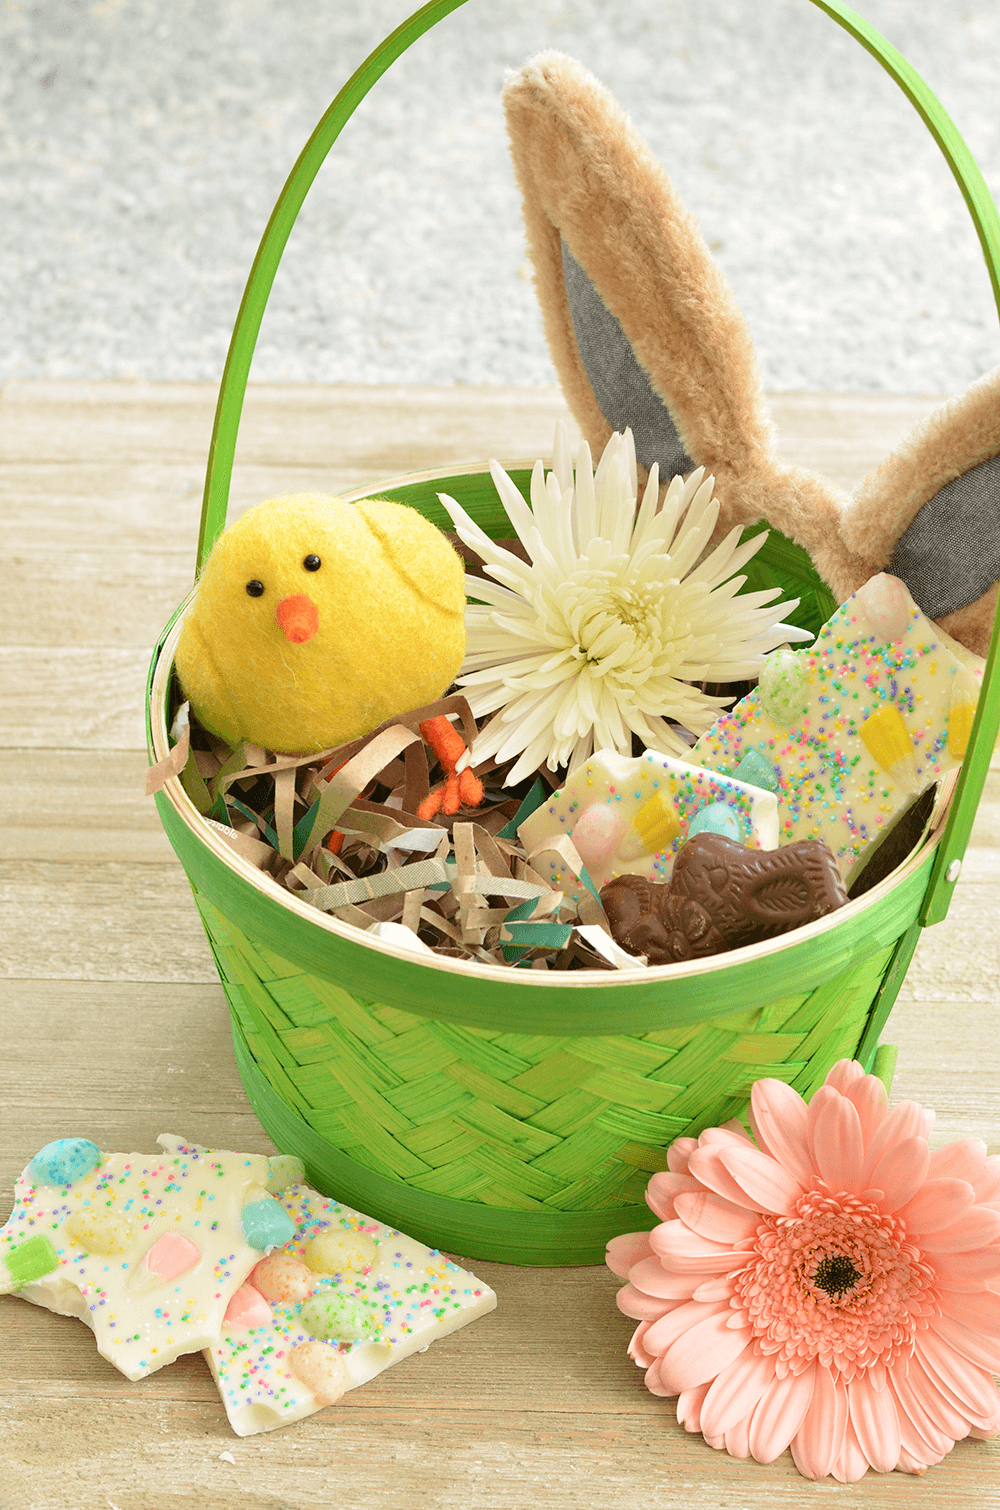 Make your own Earth-Friendly Easter Grass -A super simple project for dressing up baskets, gifts, and more.